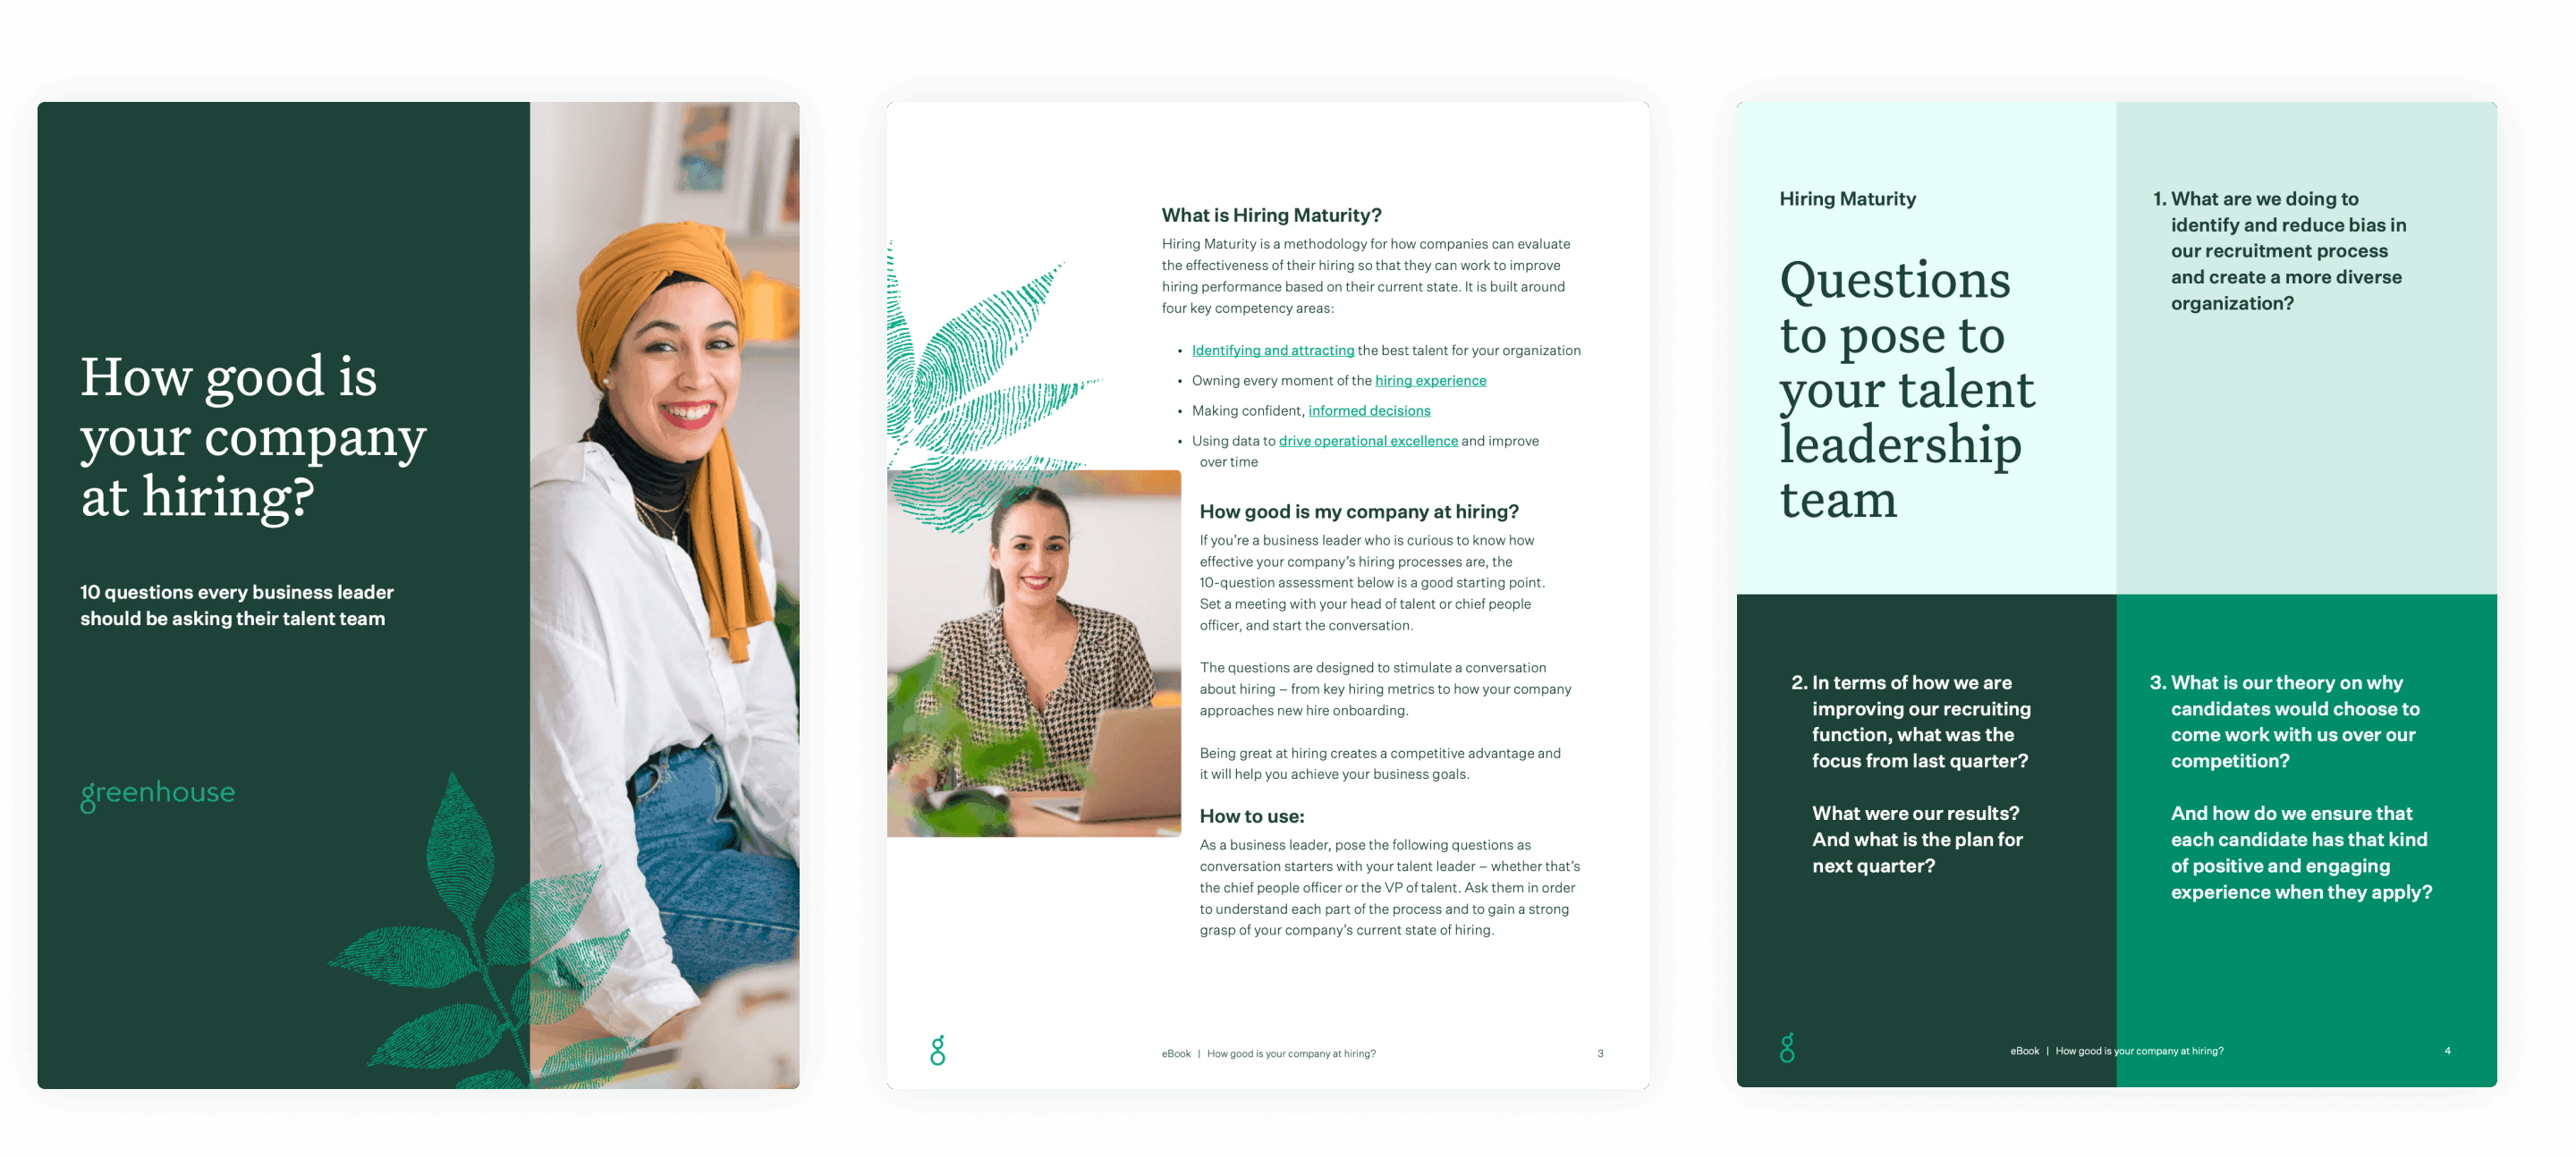 Sample pages of How good is your company at hiring?